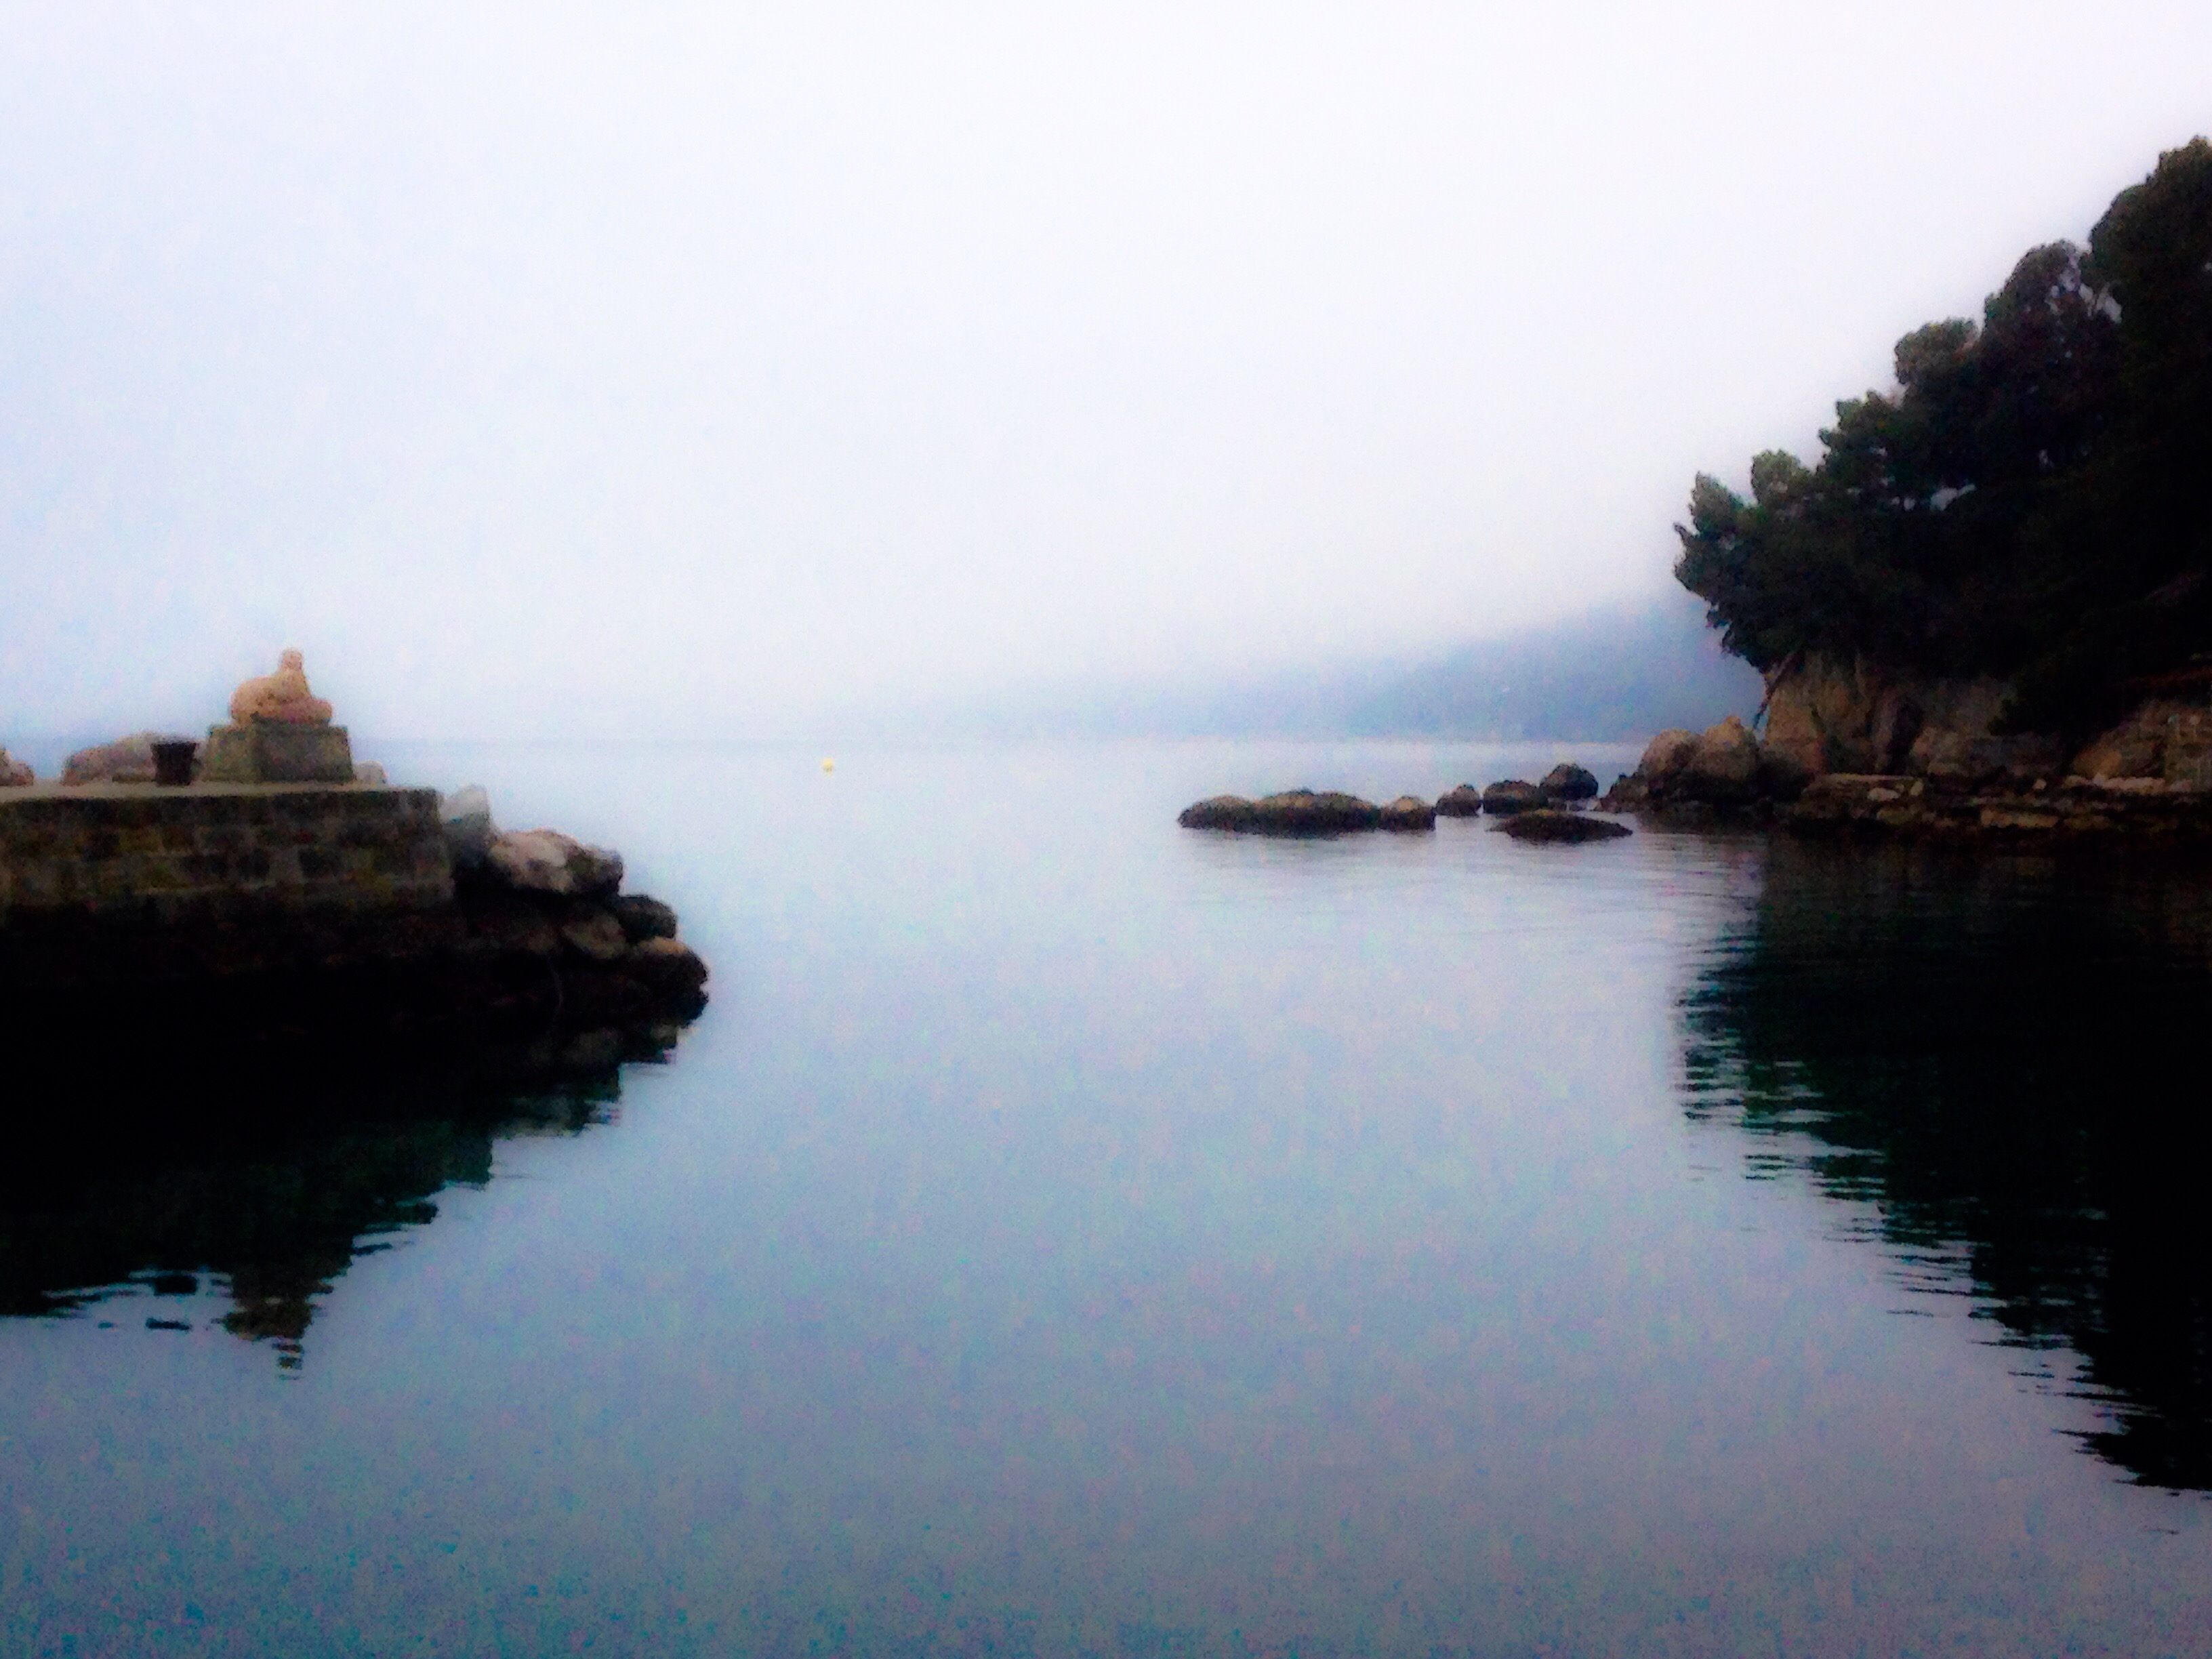 """On the misty day that we were there, the landing was reminiscent of Tolkein's """"Gray Havens""""."""